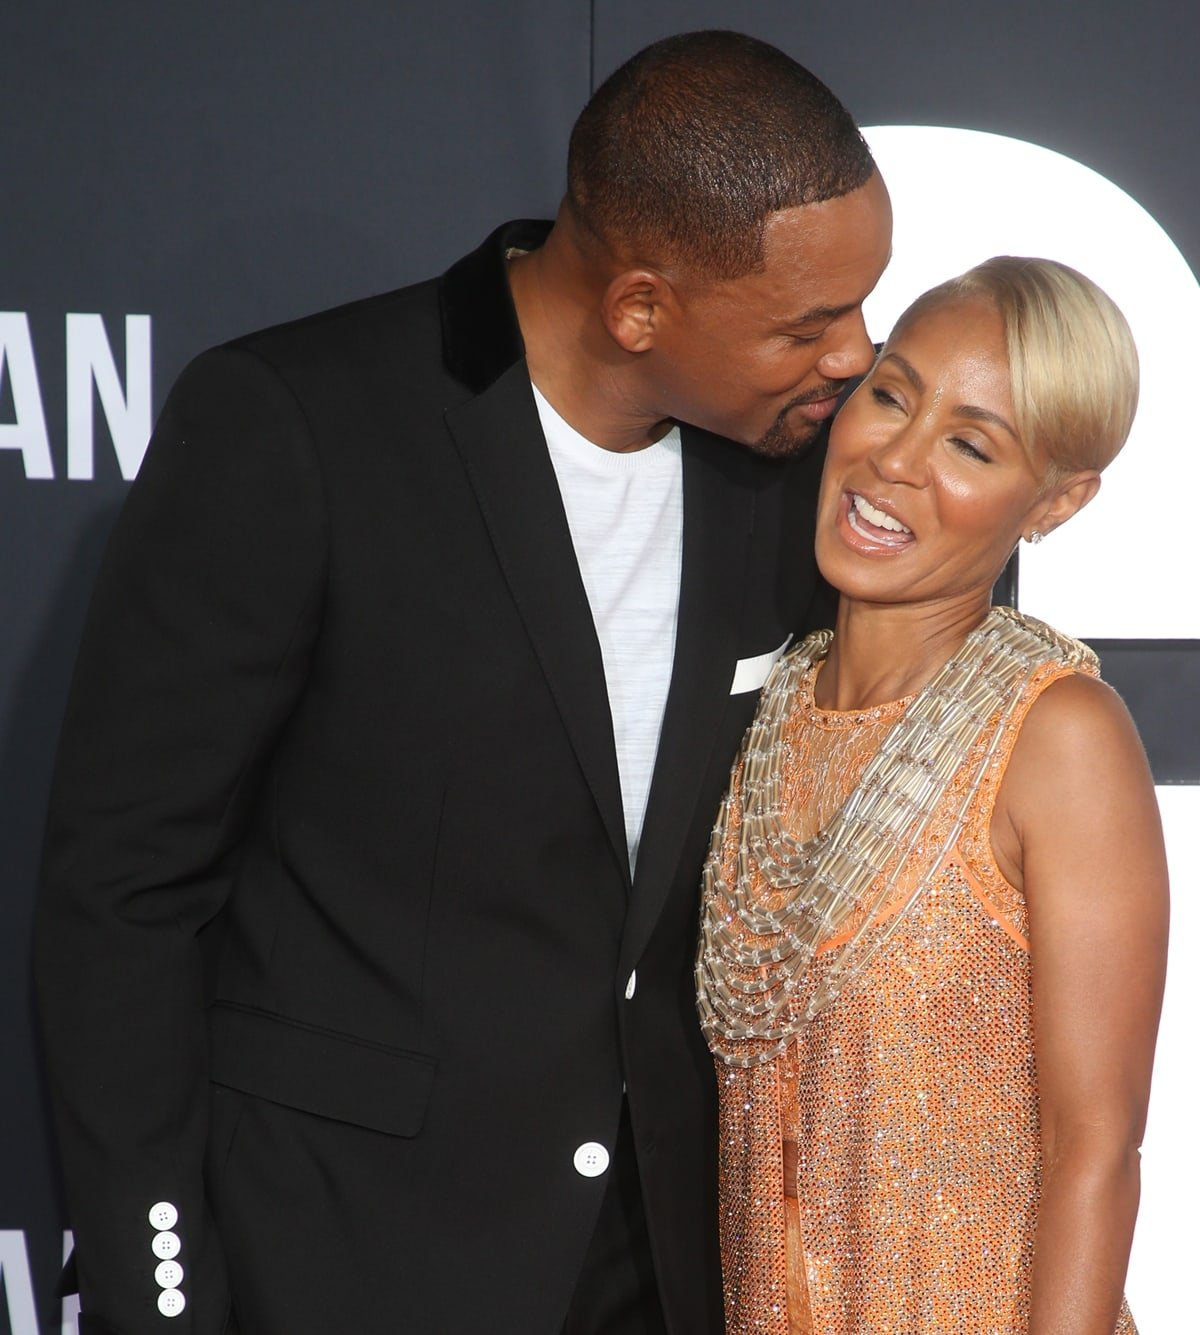 Will Smith confirms he's in an open relationship with his wife Jada Pinkett Smith